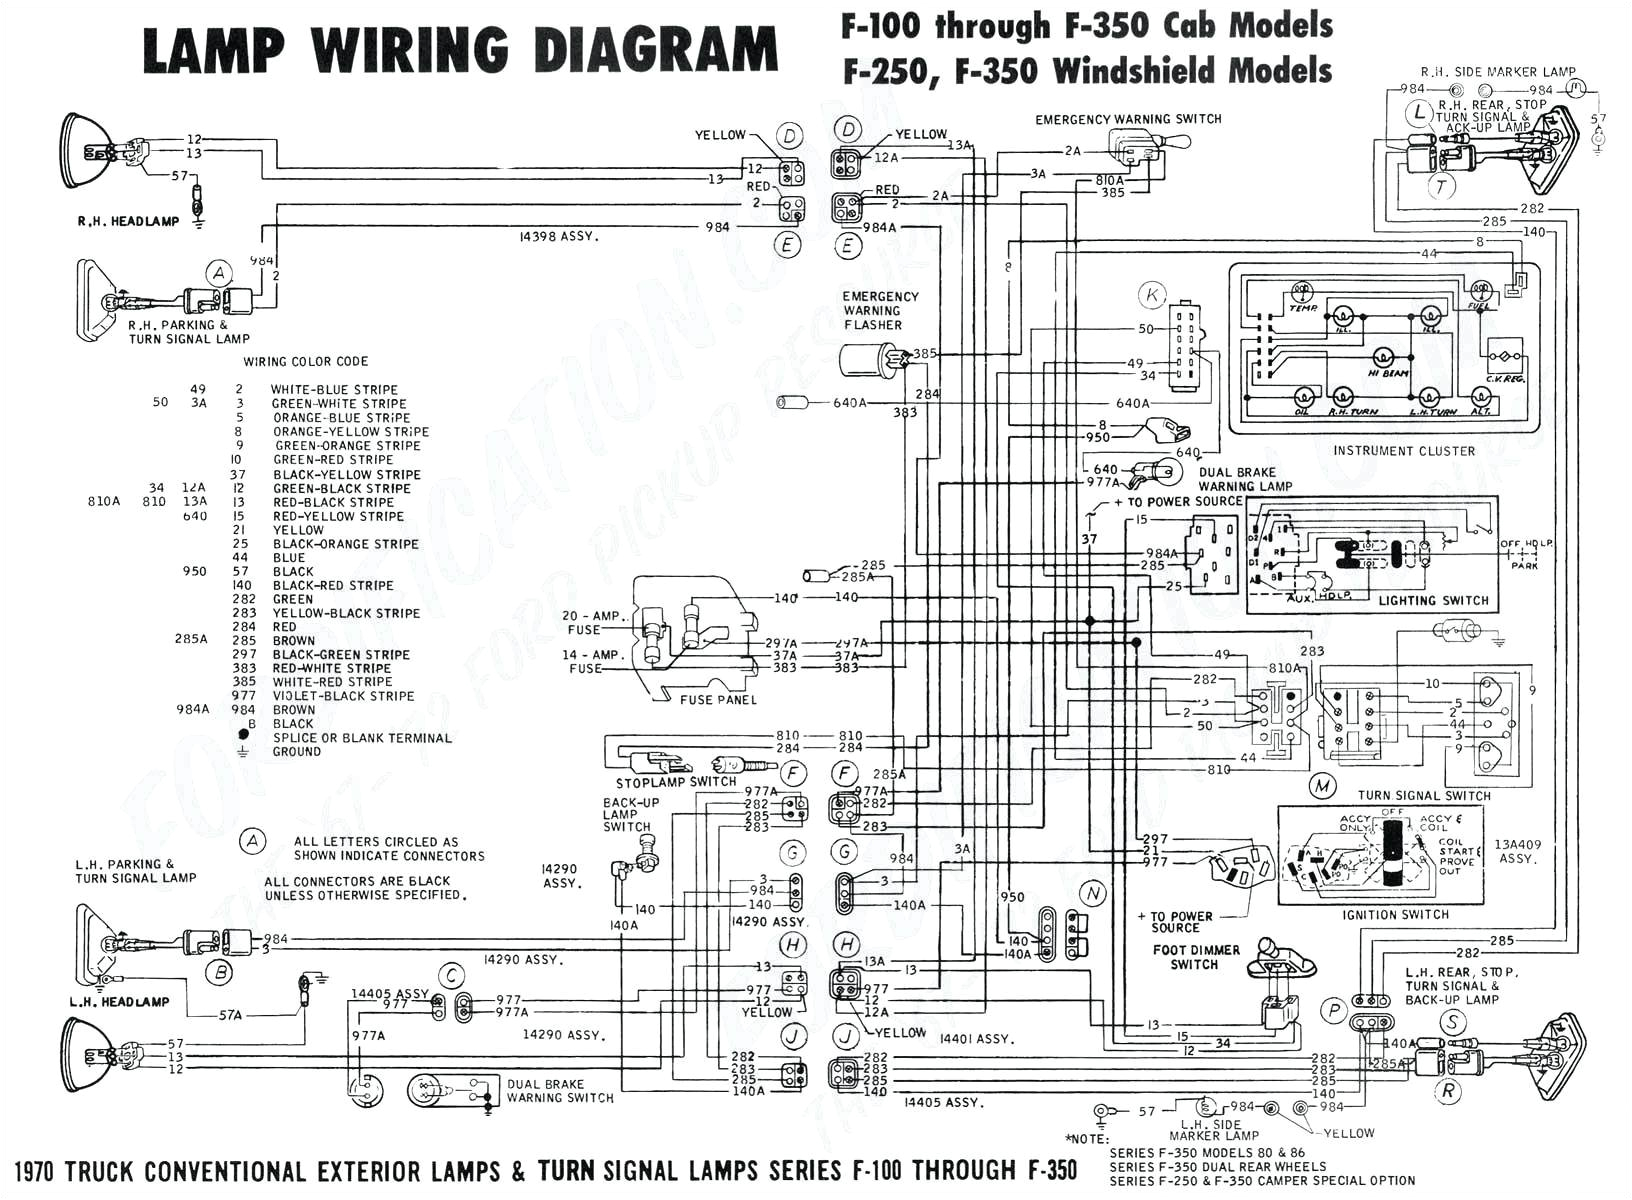 Toyota Electrical Wiring Diagram toyota 4 7 Engine Electrical Diagrams Wiring Diagram toolbox